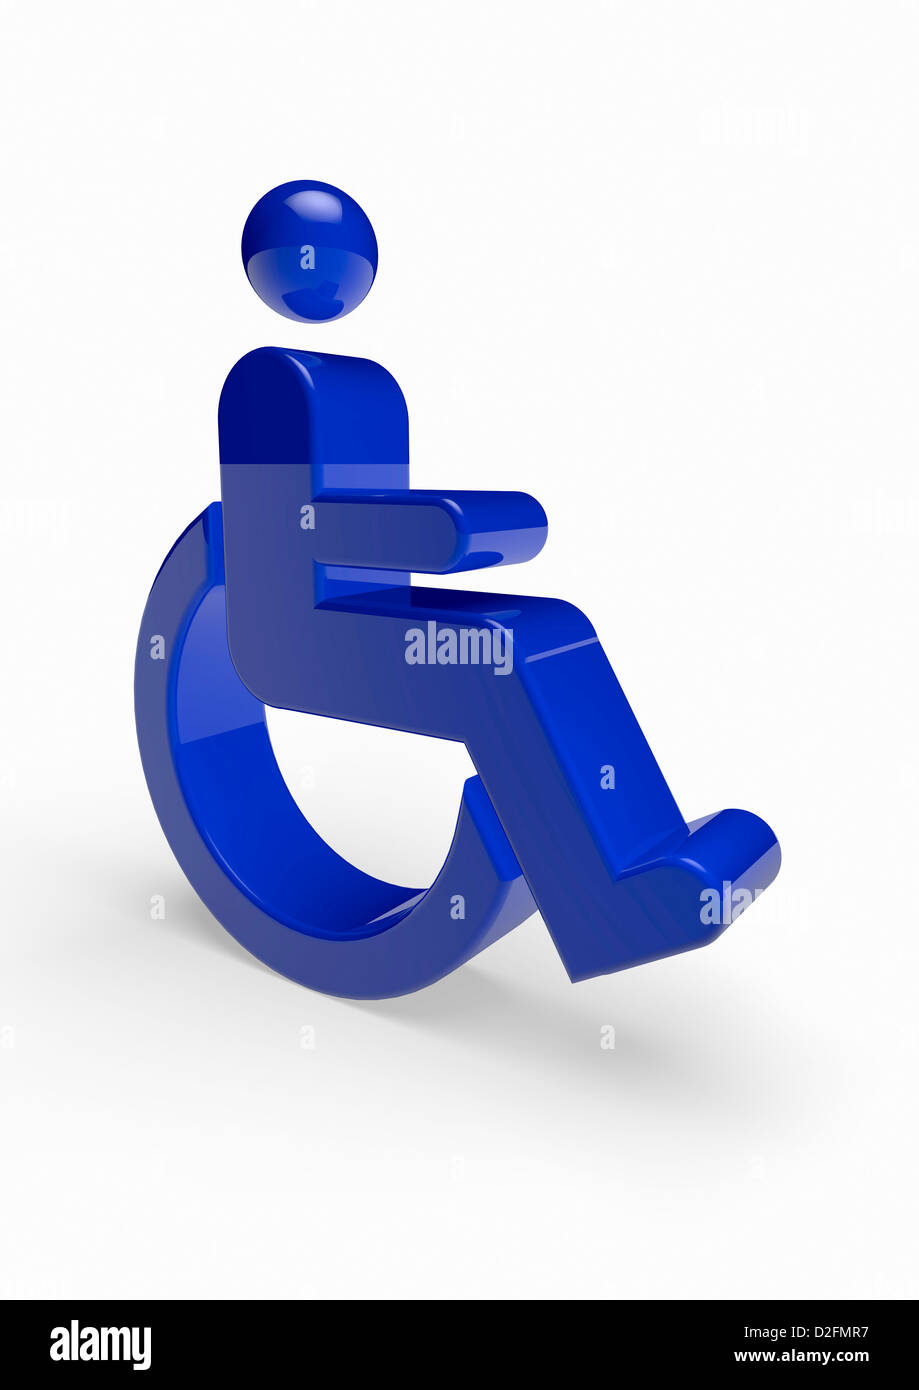 Blue disabled symbol on white background - Stock Image